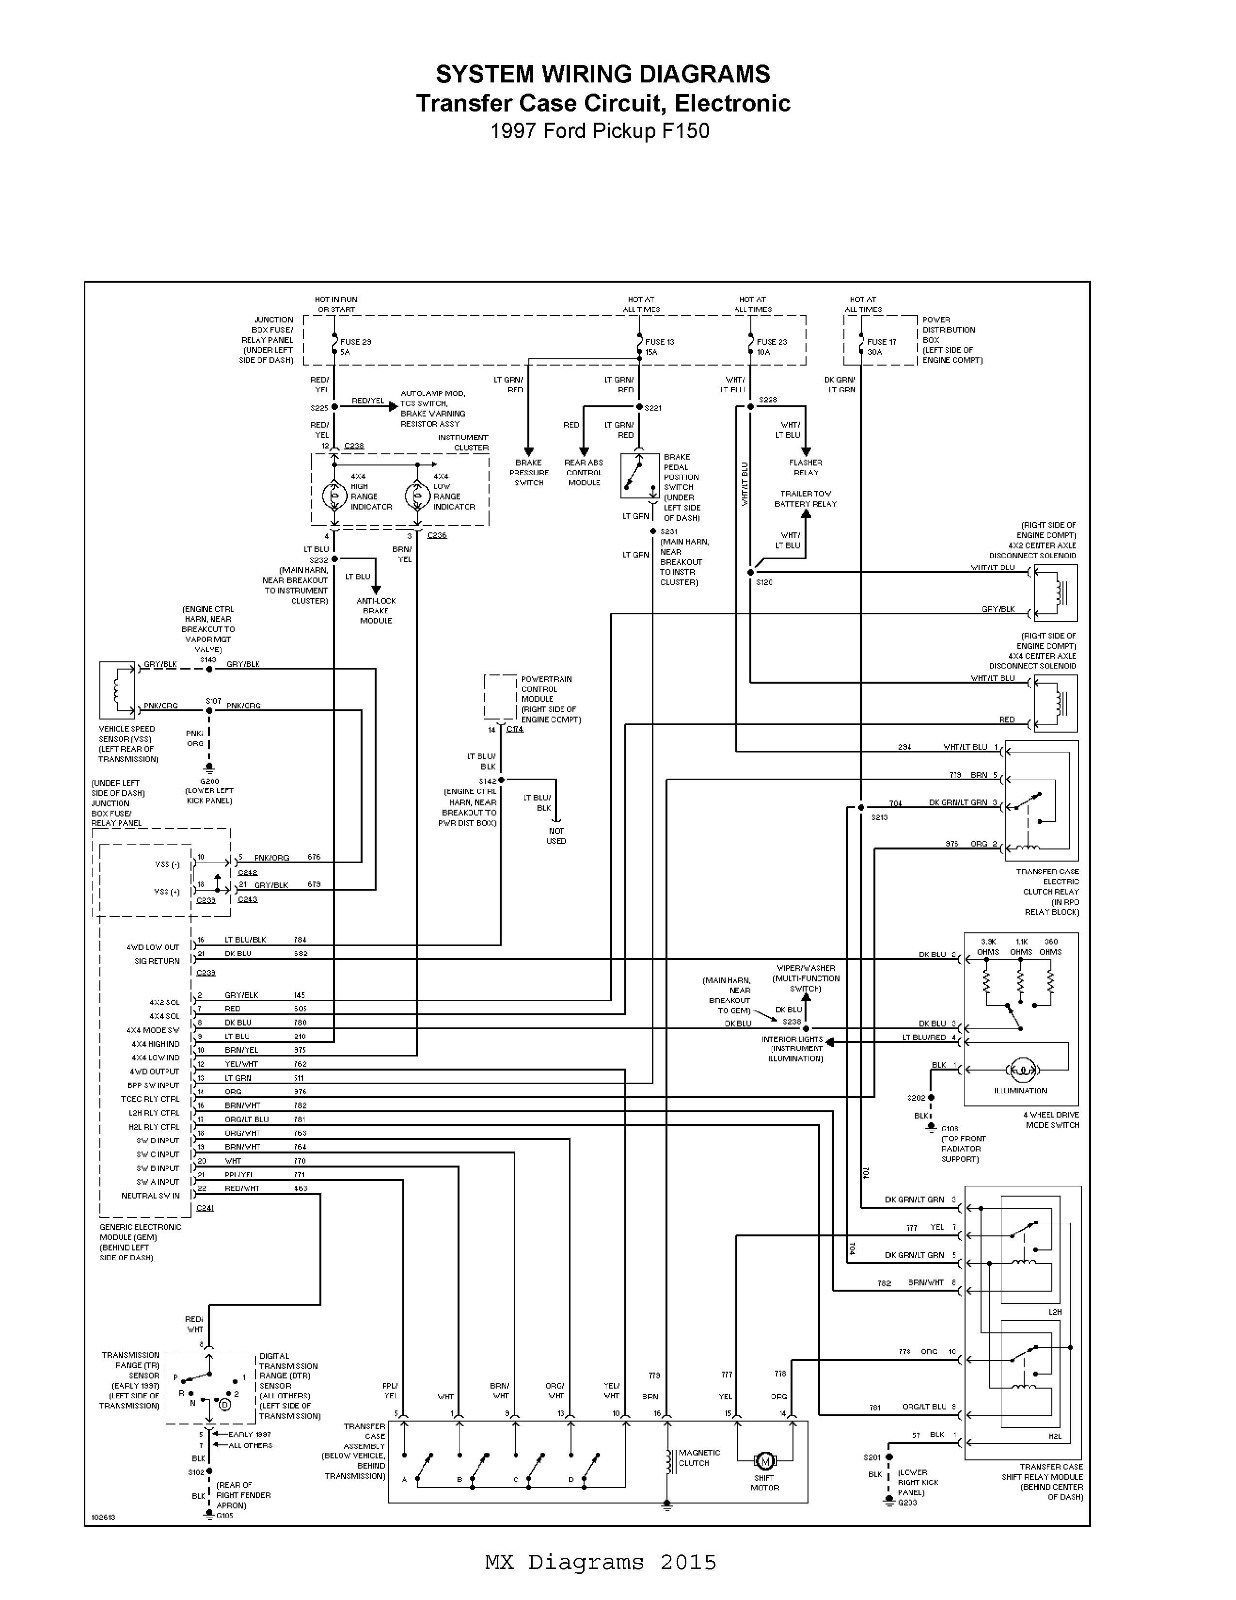 Ford F 150 97 Complete Wiring Diagram Schematic 4 2l